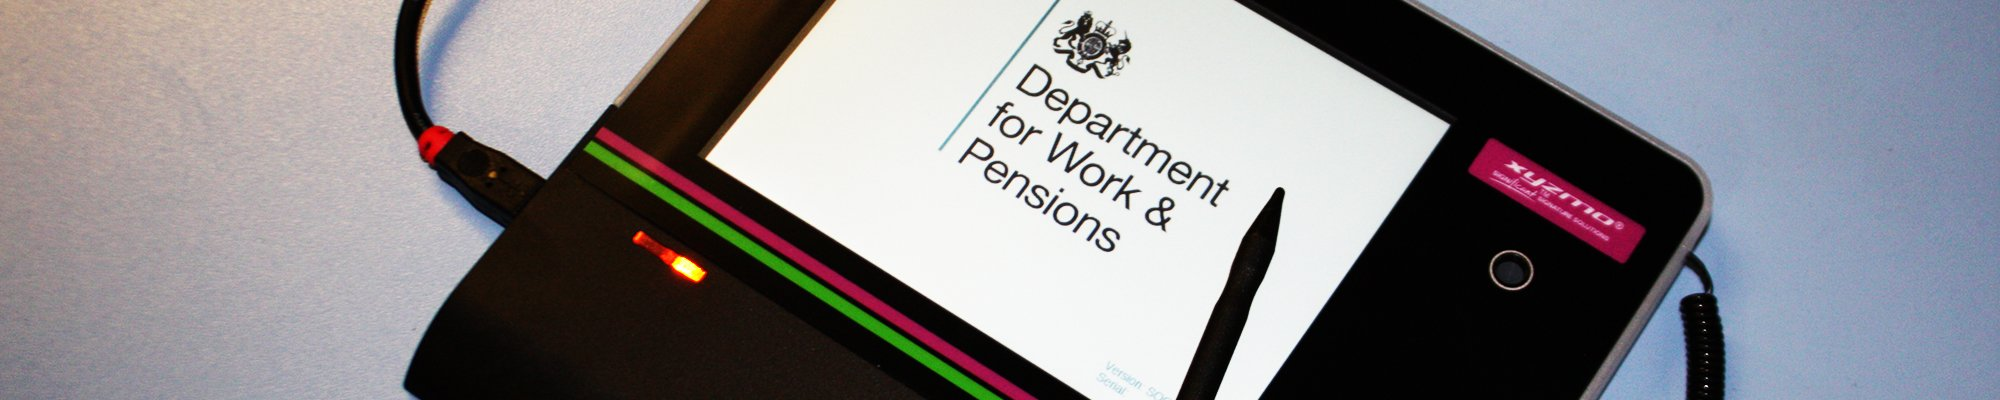 Department for Work and Pensions claims payments progress